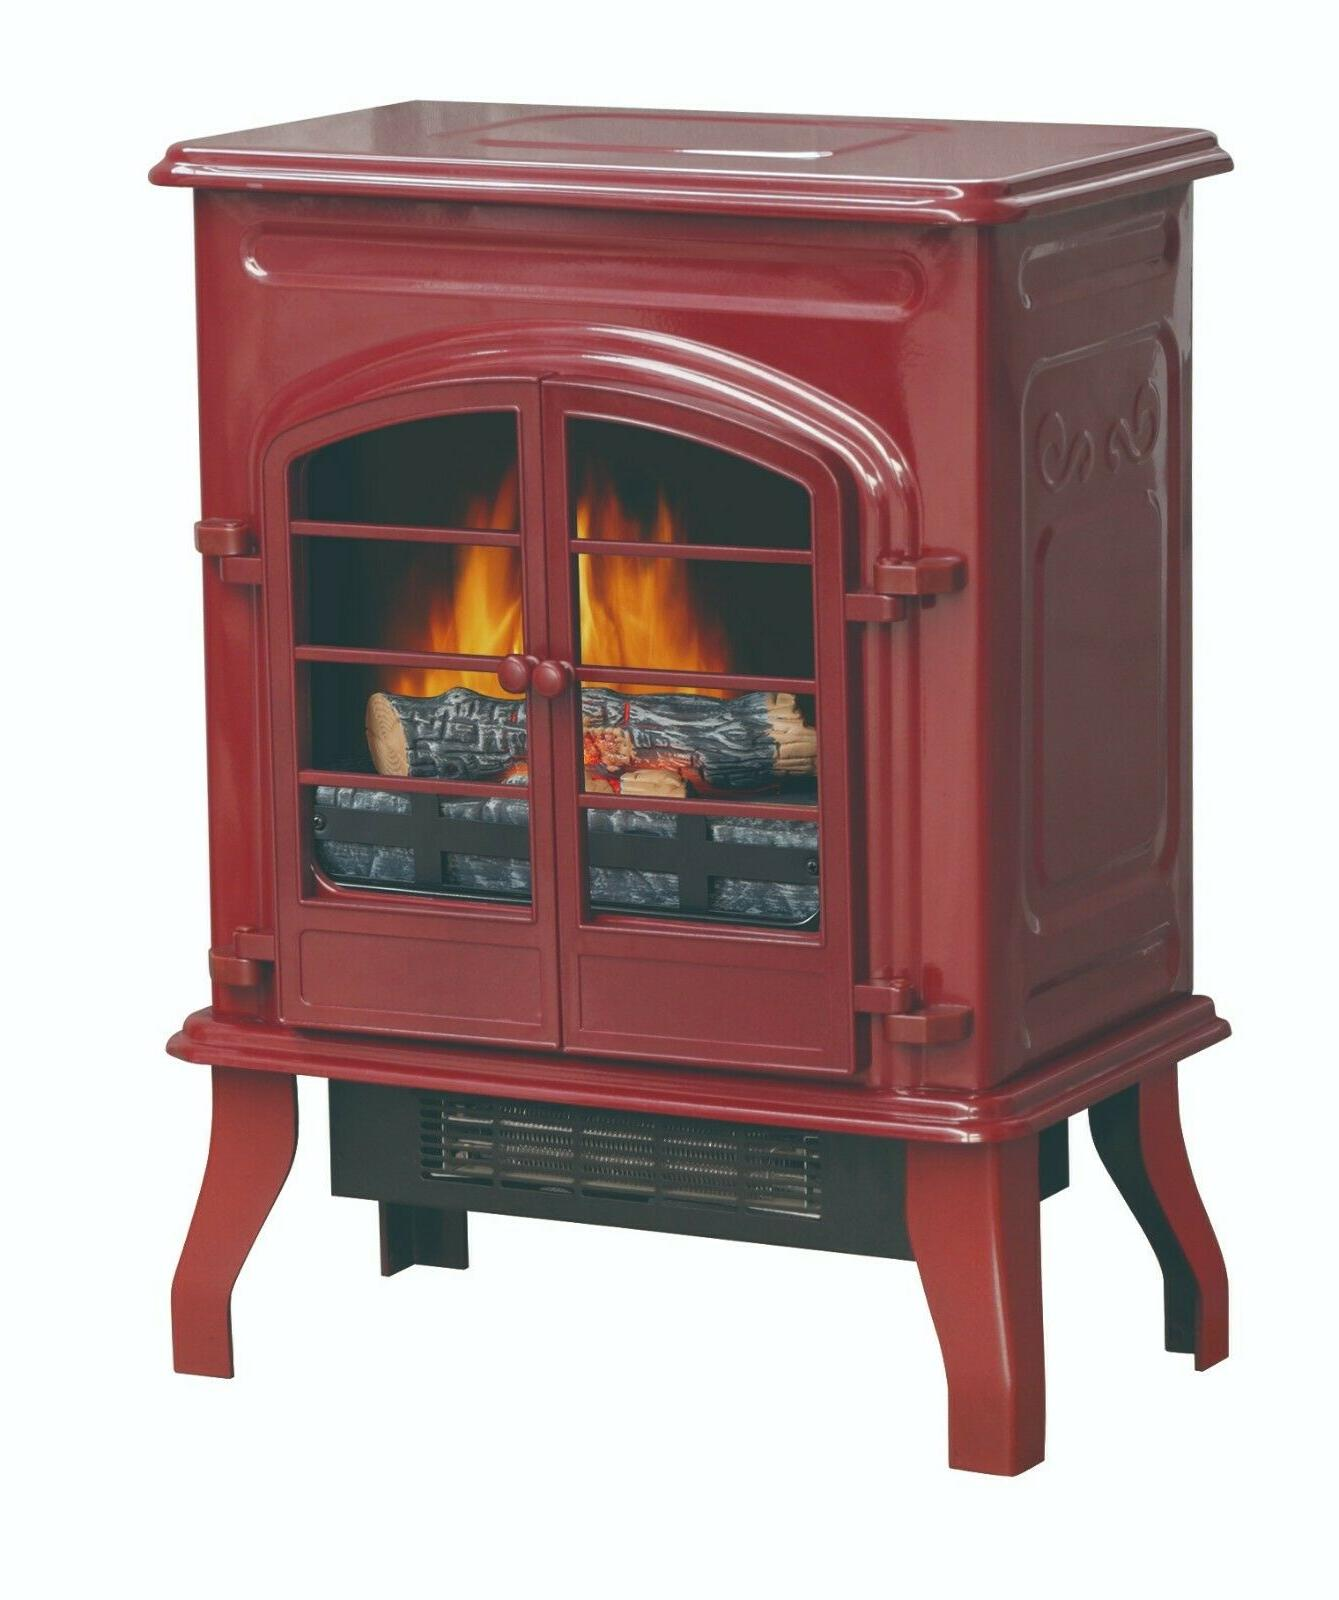 Red Stove Electric Space Heater 2 Heat Settings 750/1500W Th